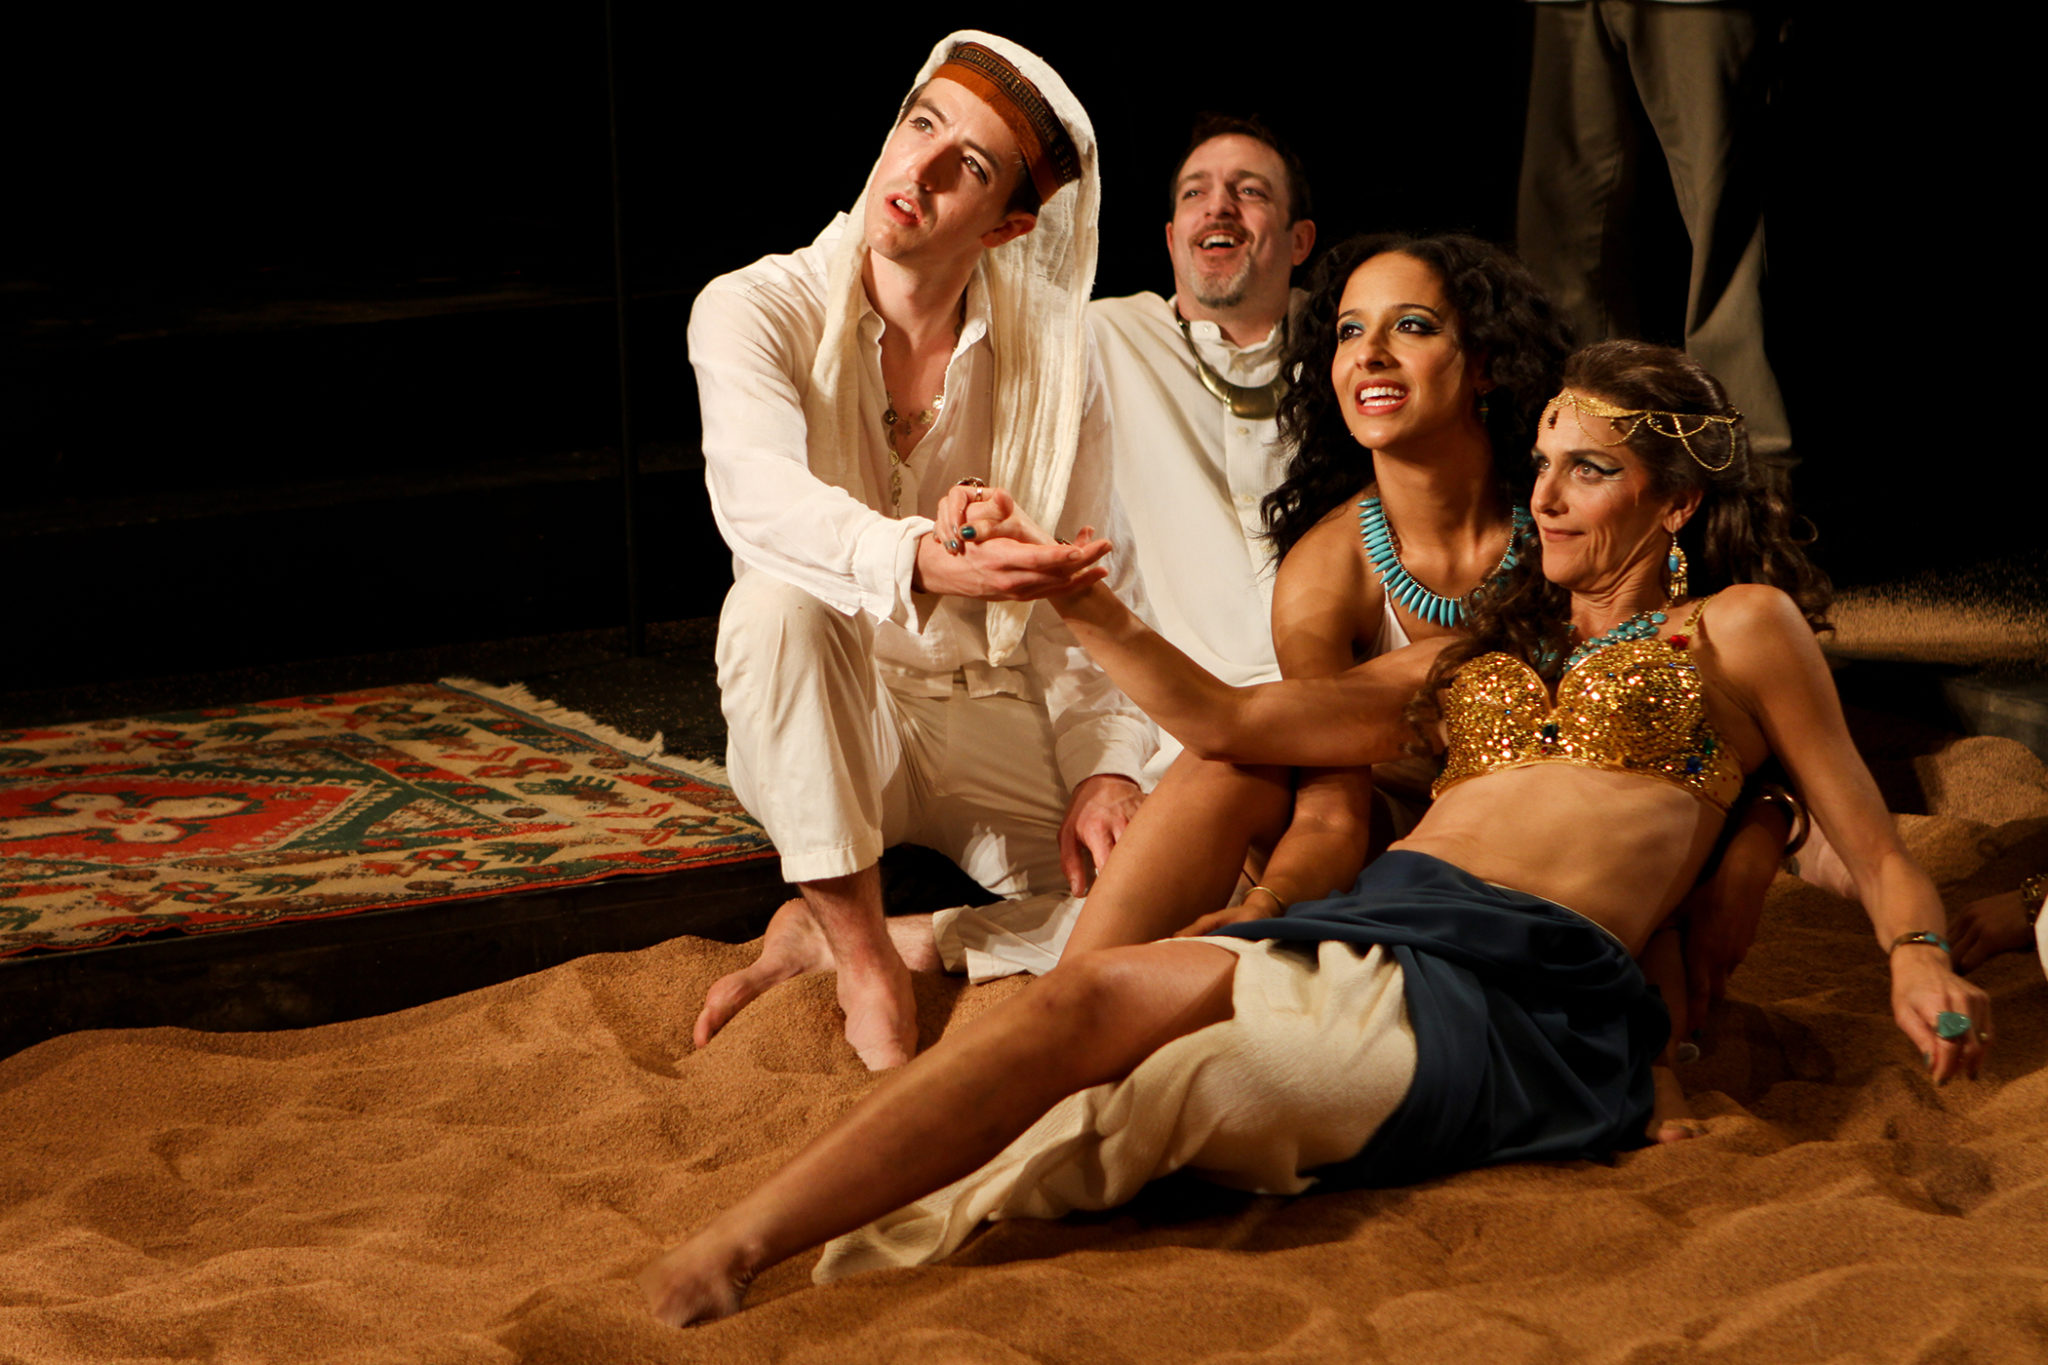 """Adam Standley as Alexas, Mike Dooly as ensemble, Allison Strickland as Iras and Amy Thone as Cleopatra in Seattle Shakespeare Company's 2012 production of """"Antony and Cleopatra."""" Photo by John Ulman."""